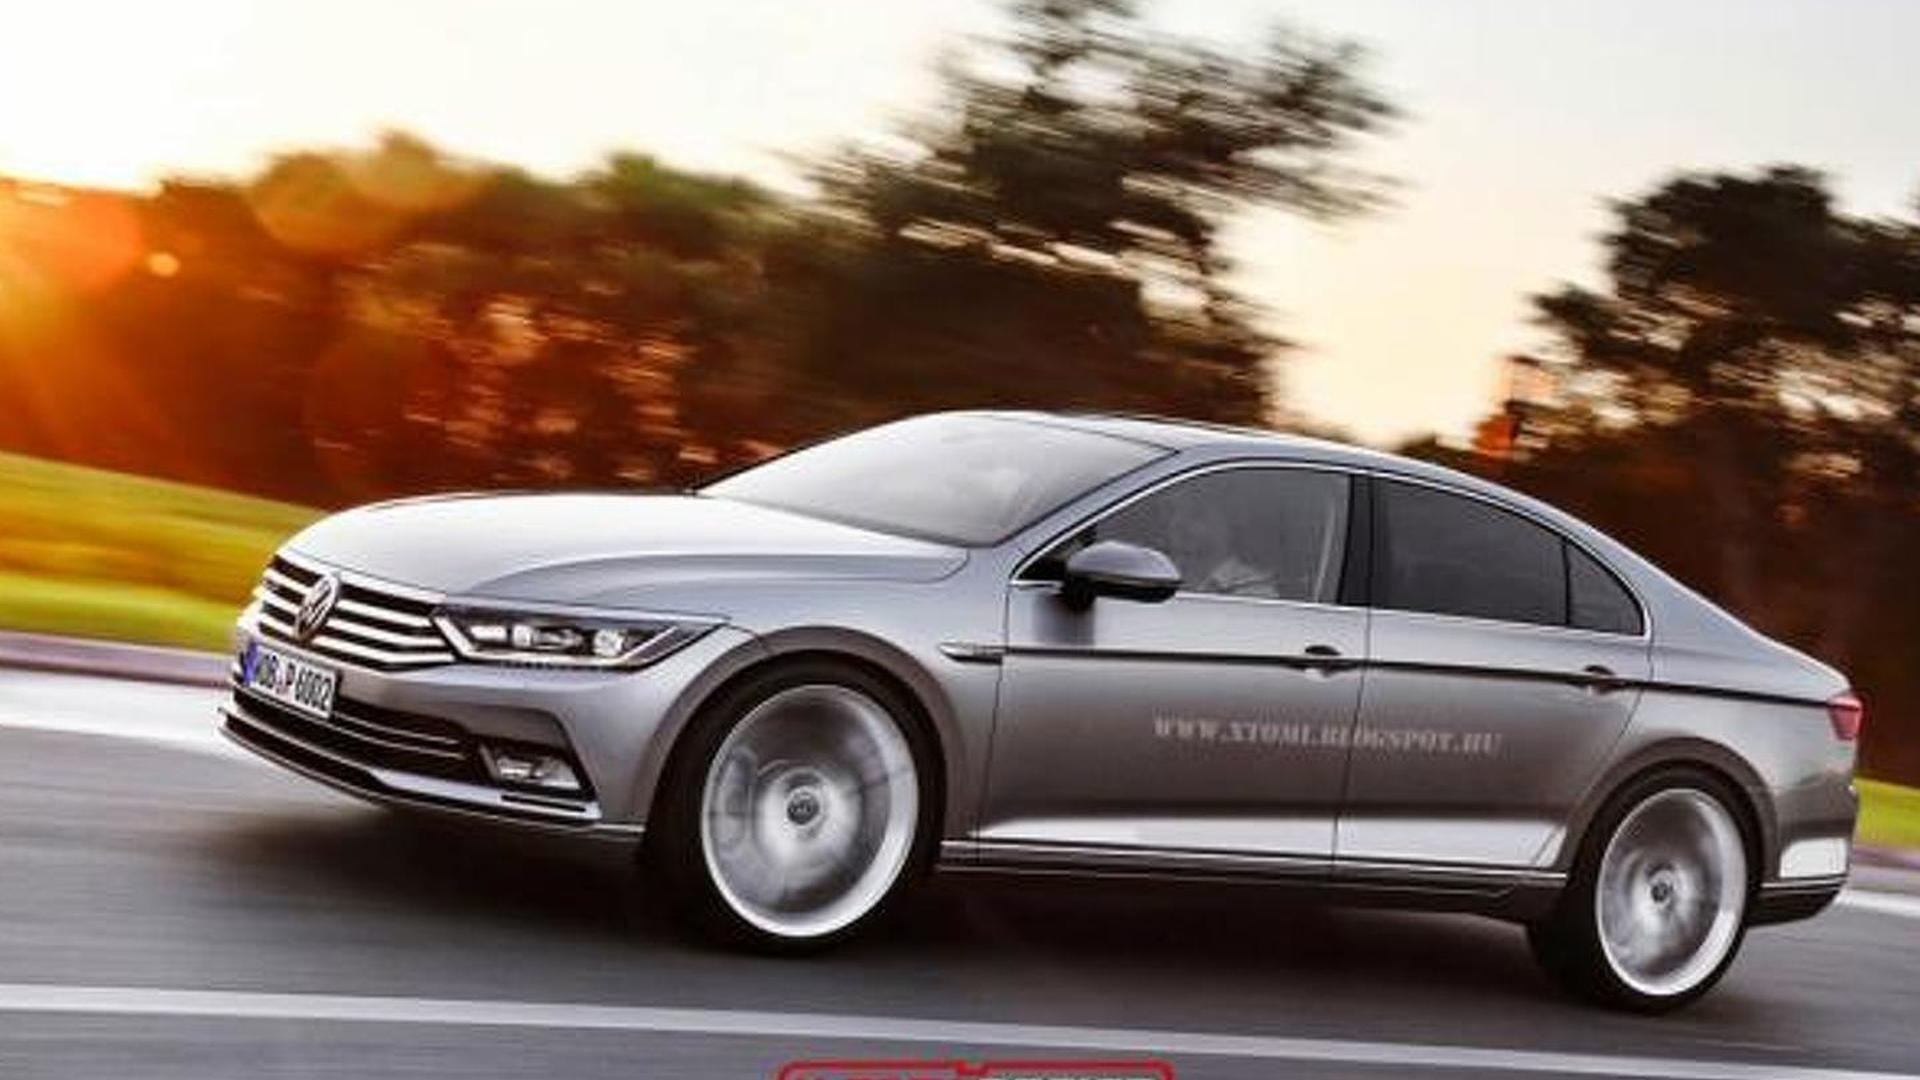 2020 The Next Generation VW Cc Exterior and Interior